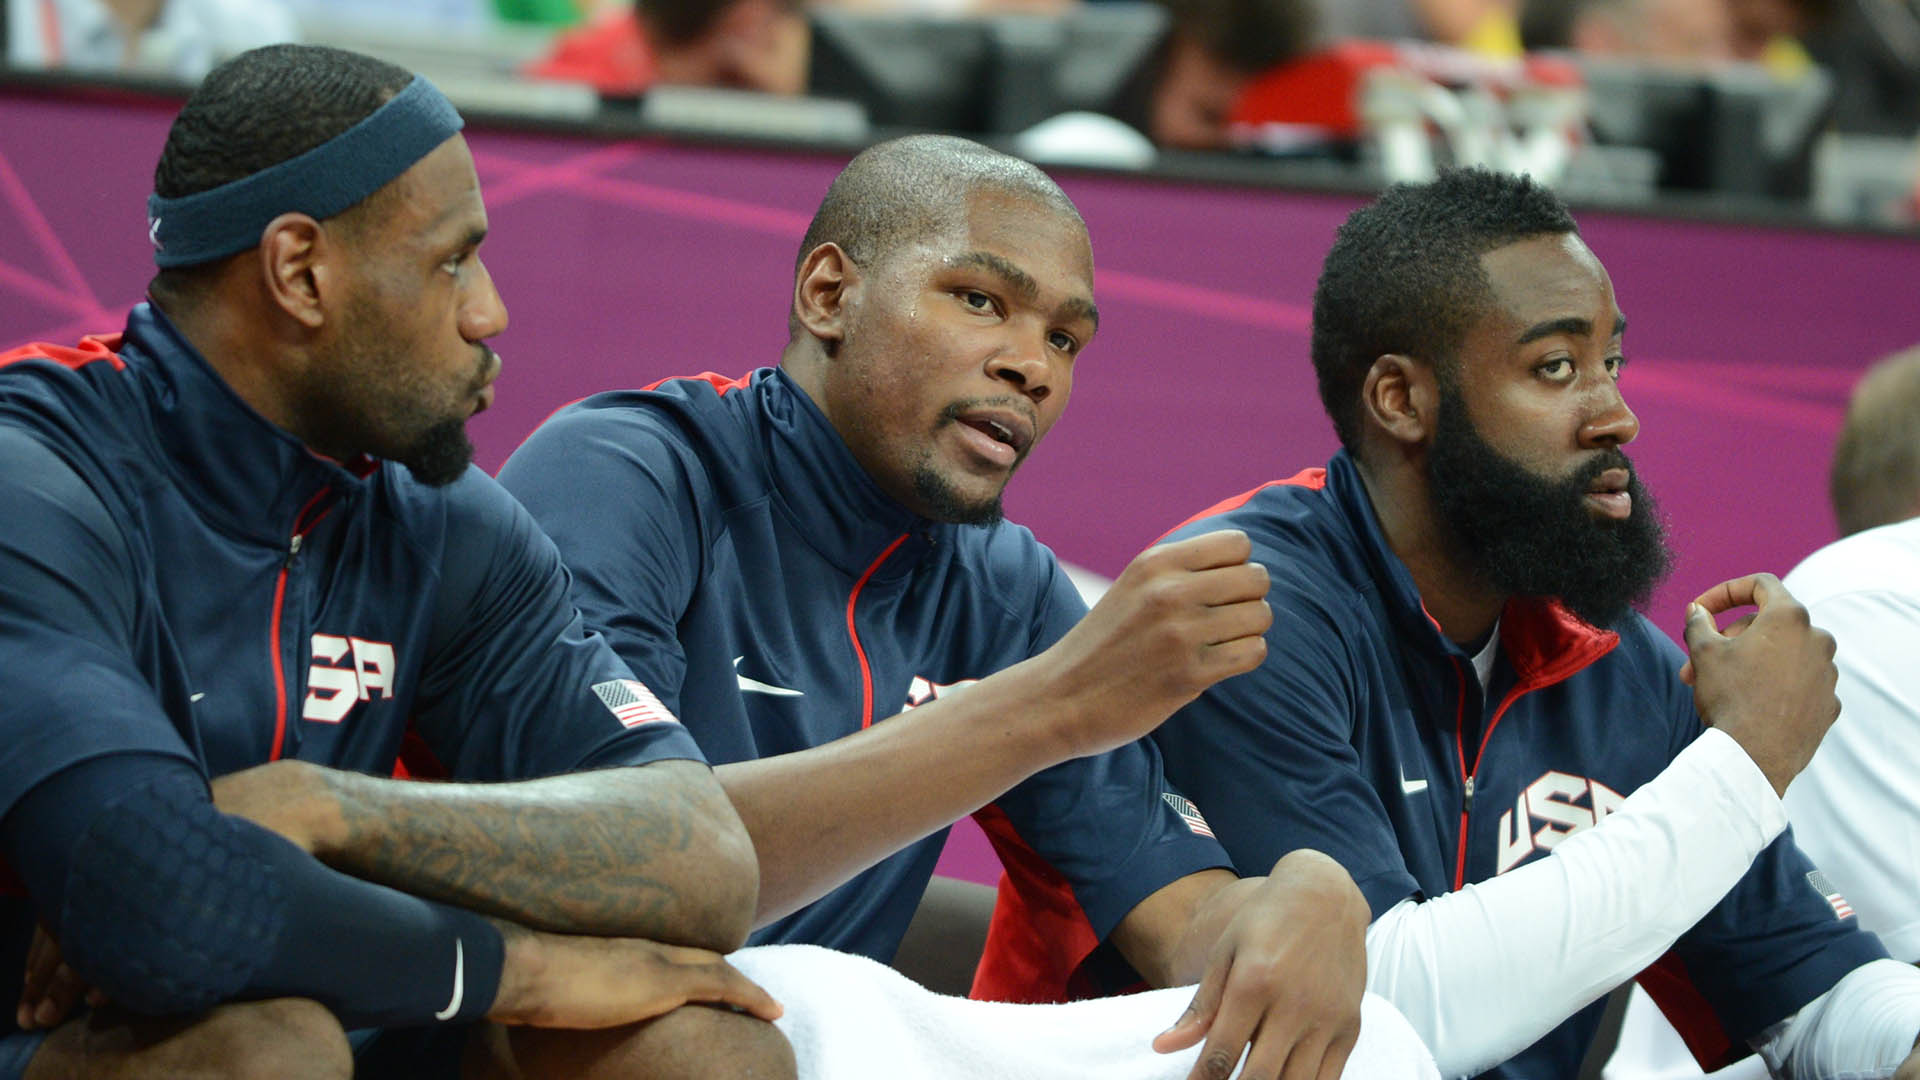 USA Basketball announces 57 finalists for U.S. Olympic Men's Team